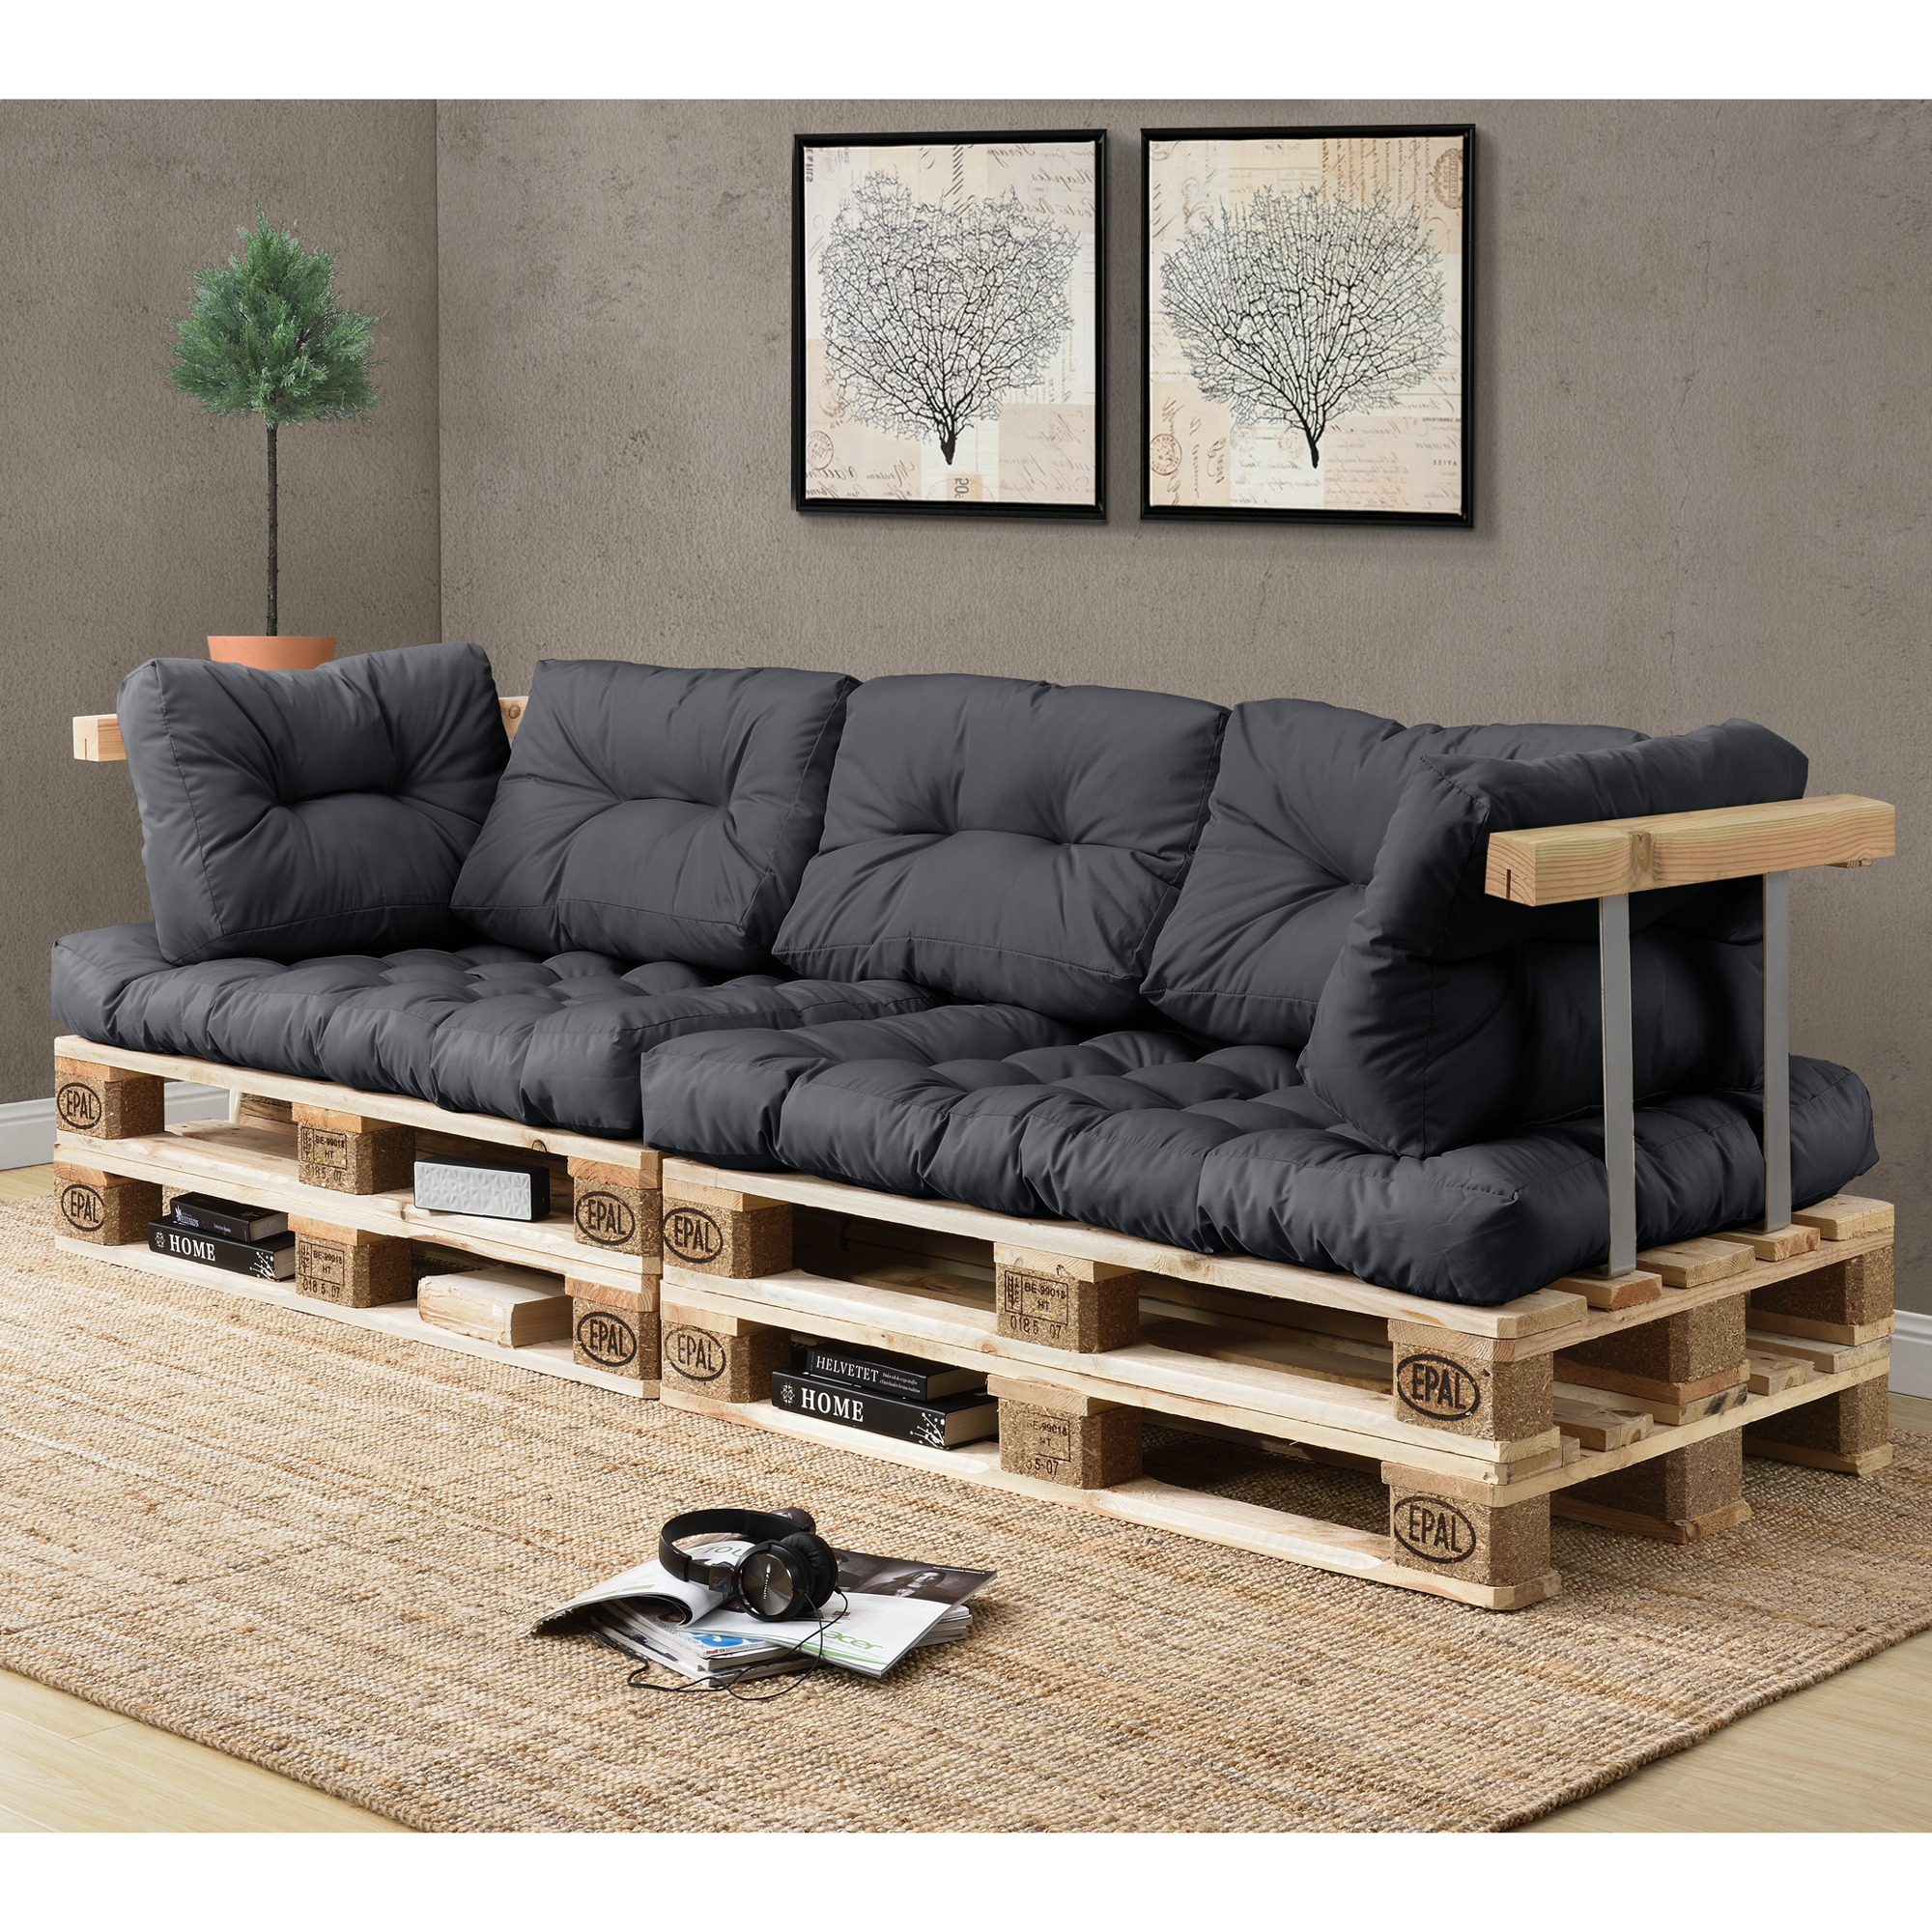 1x sitzpolster palettenkissen in outdoor. Black Bedroom Furniture Sets. Home Design Ideas